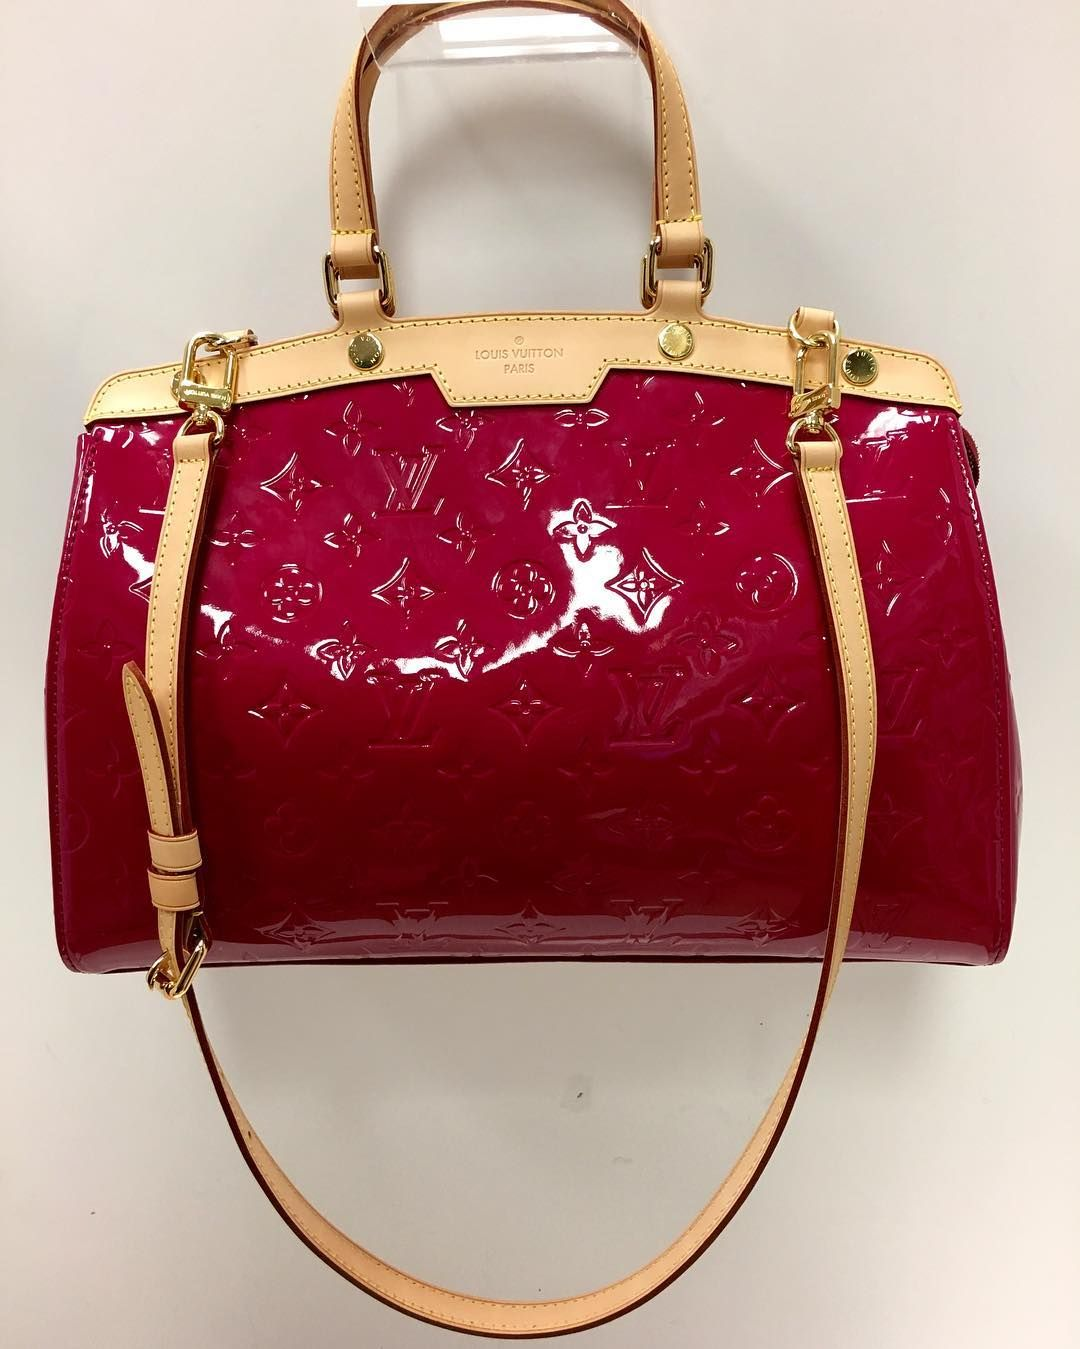 A pop of Pink!! Title:magenta patent leather vernis brea DR4142 Price:$1049.99 Item #:6513-13040 Location: Sandy springs  To purchase or see more pictures and details go to our website click link on bio and type the item# on our search bar on the website or call 770.390.0010 ex. 3  #alexissuitcase #buckhead #atl #atlantaconsignment #thriftatl #resale #highenddesigner #consignment #luxury #designer #resaleatlanta #boutique #atlanta #fashioninspiration #shopmycloset #upscaleresale by…